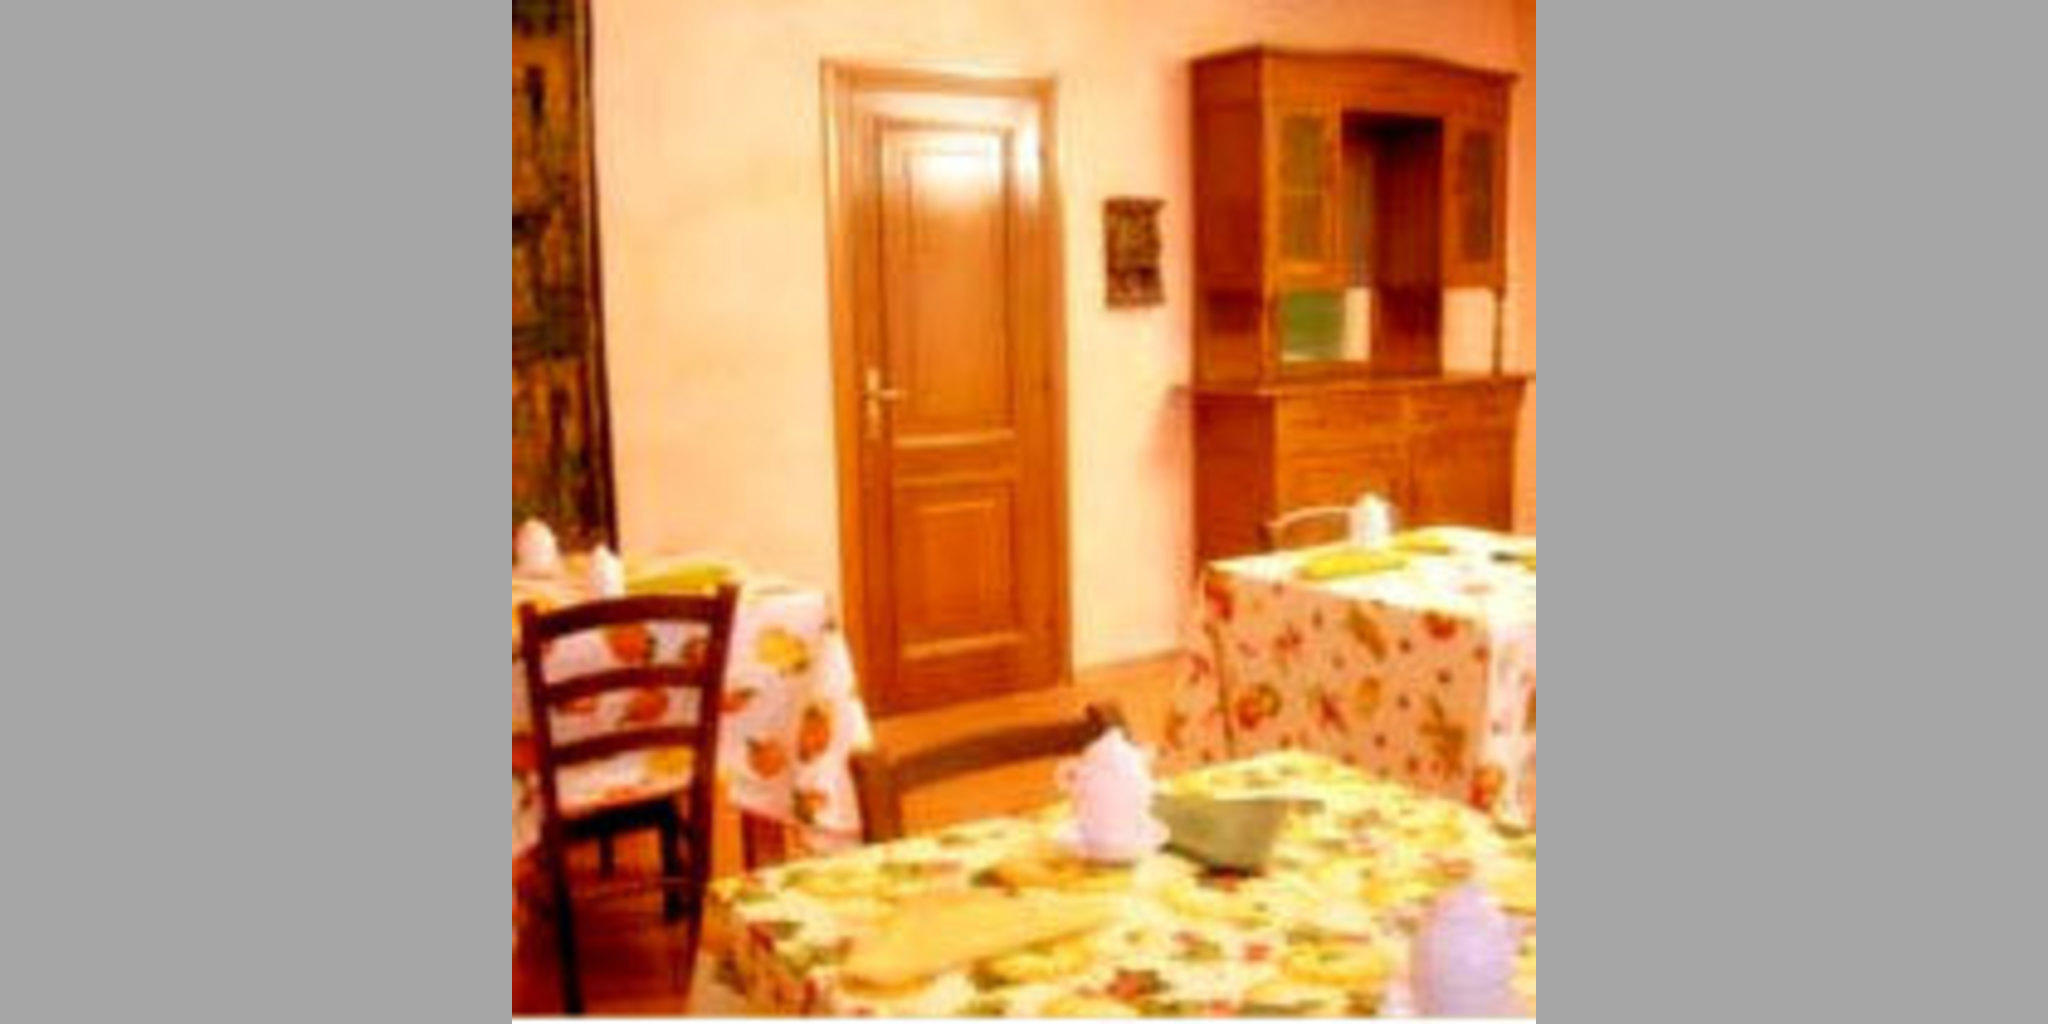 Bed & Breakfast Frascati - Grotte